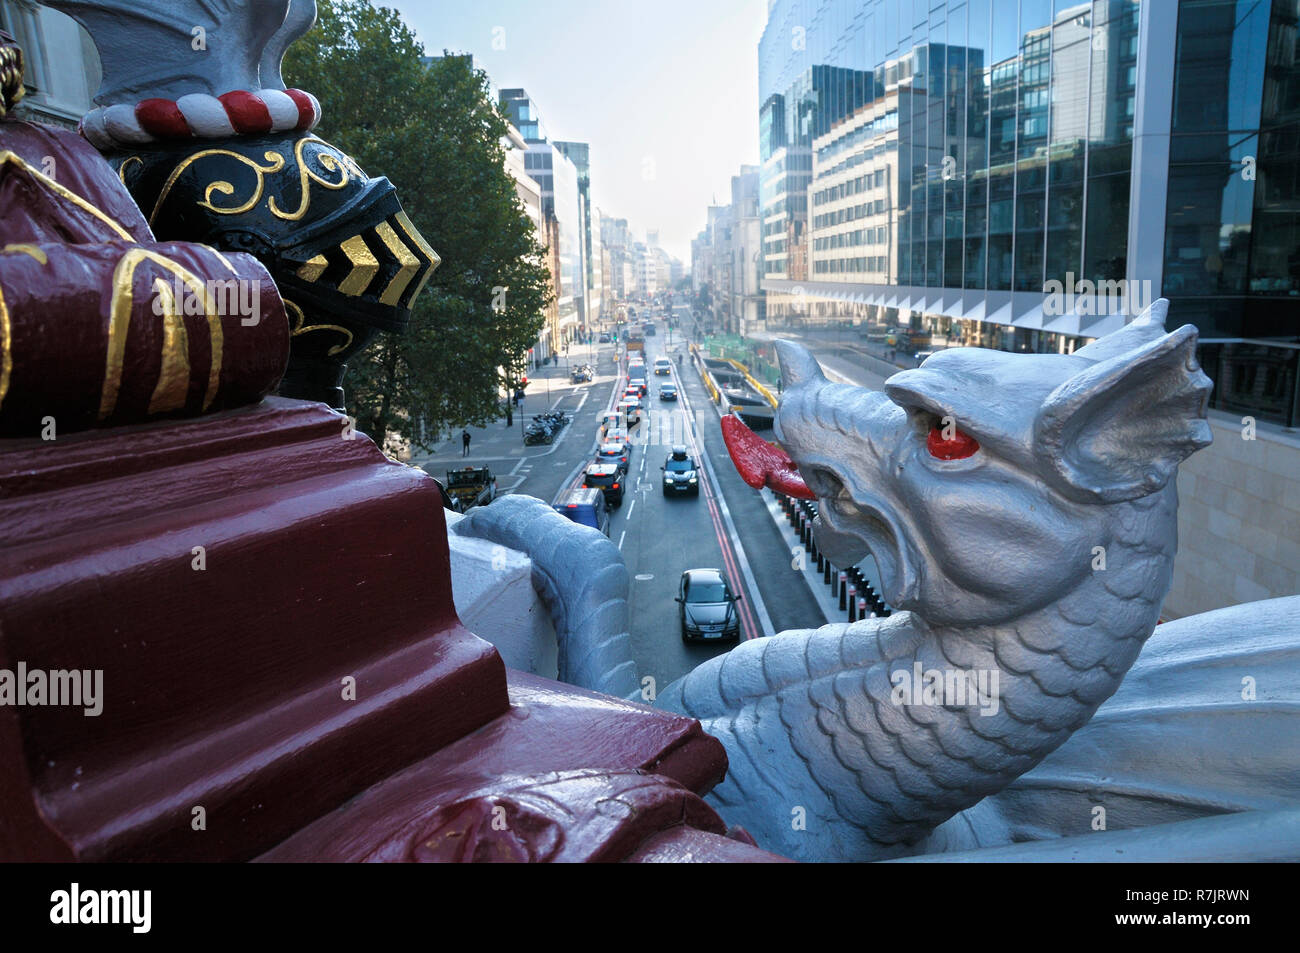 City dragon boundary marker on Holborn Viaduct overlooking Farringdon Street, City of London, England, UK - Stock Image